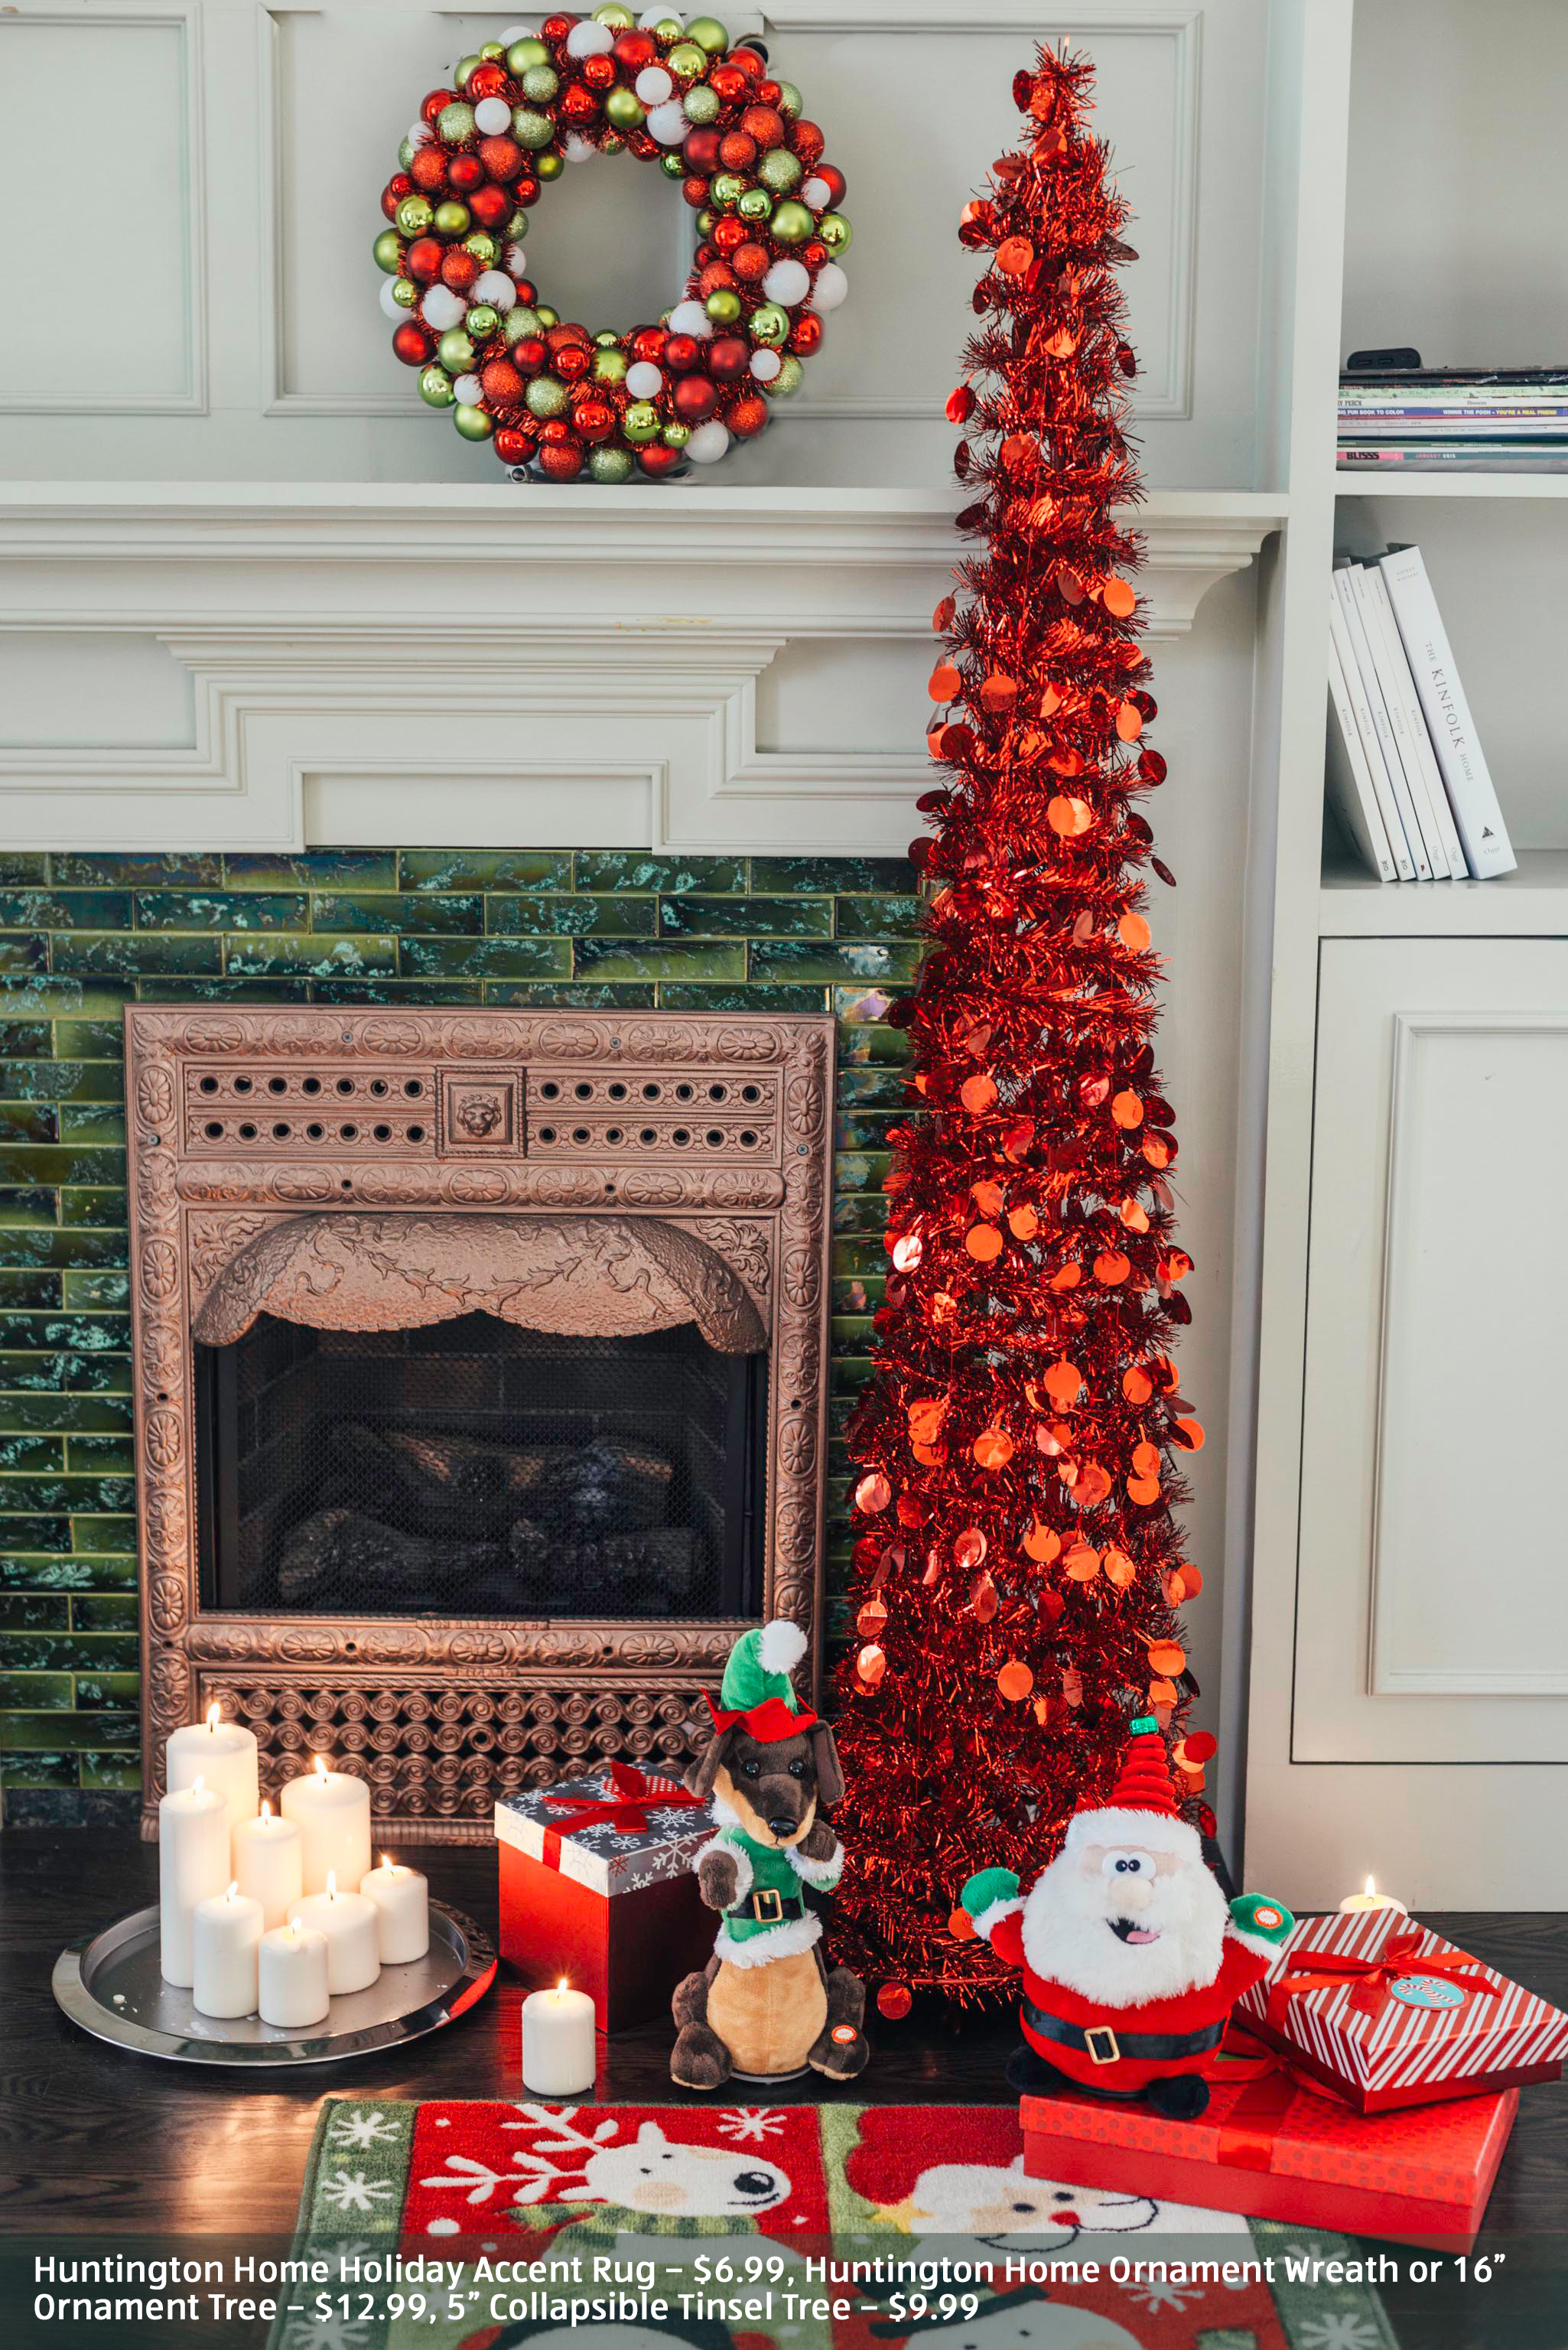 Christmas themed decorations around the fireplace.